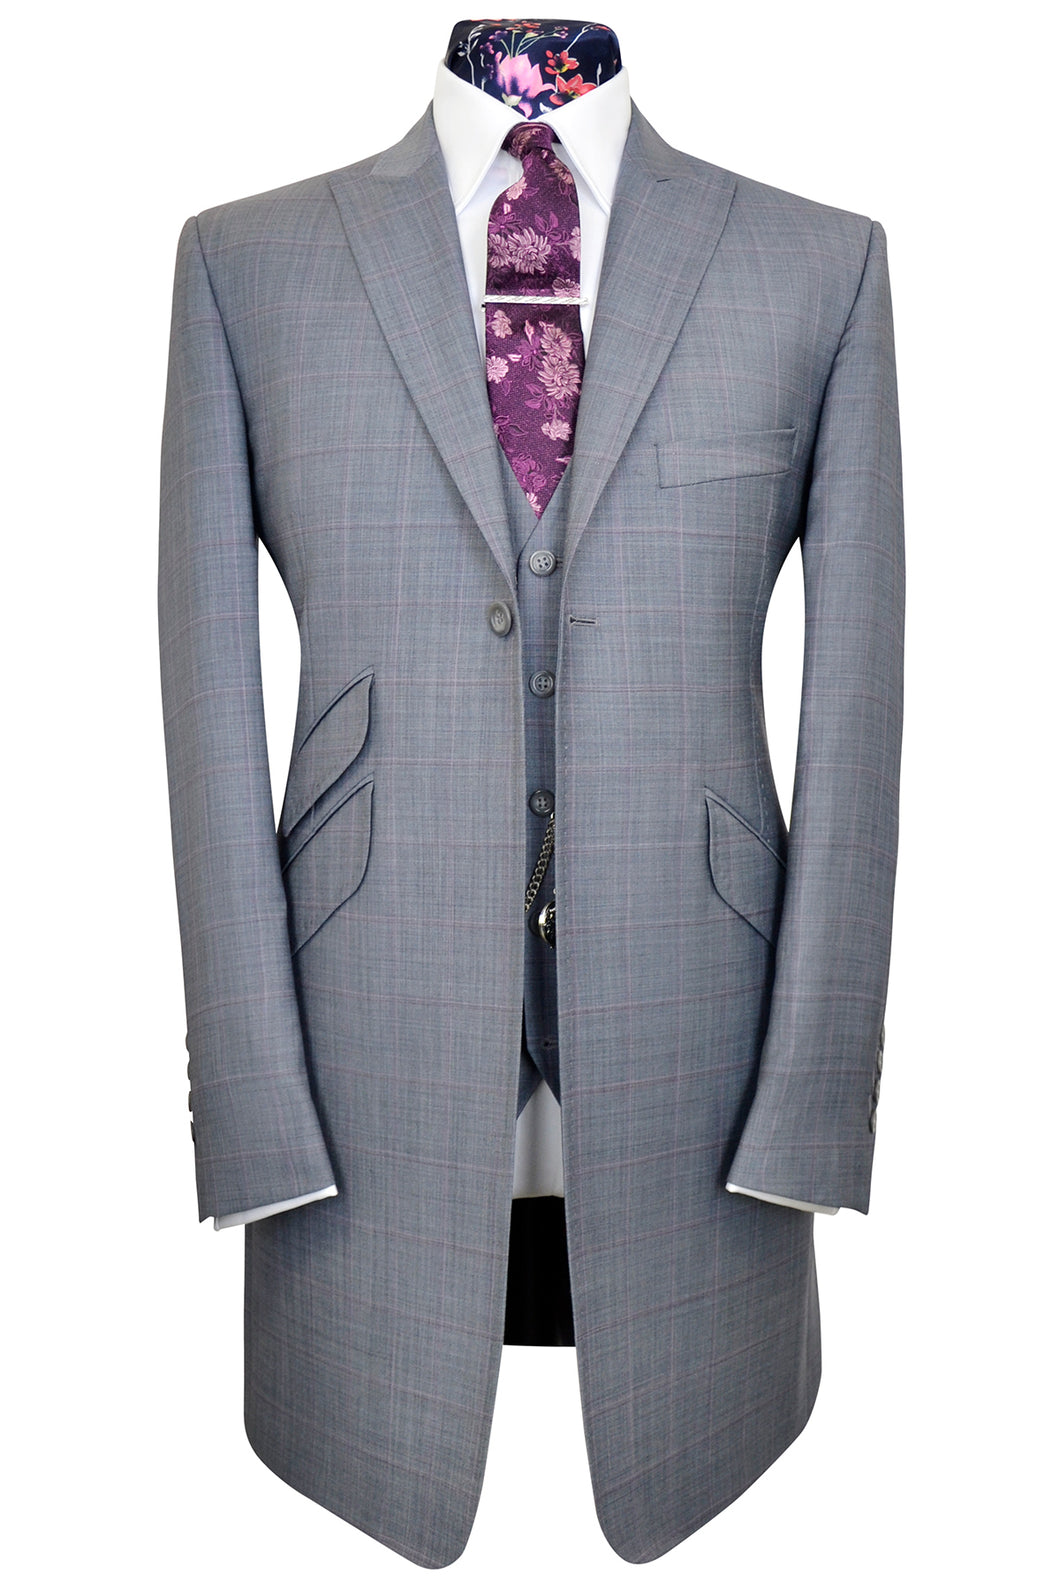 Dove grey three piece peak lapel frock coat suit